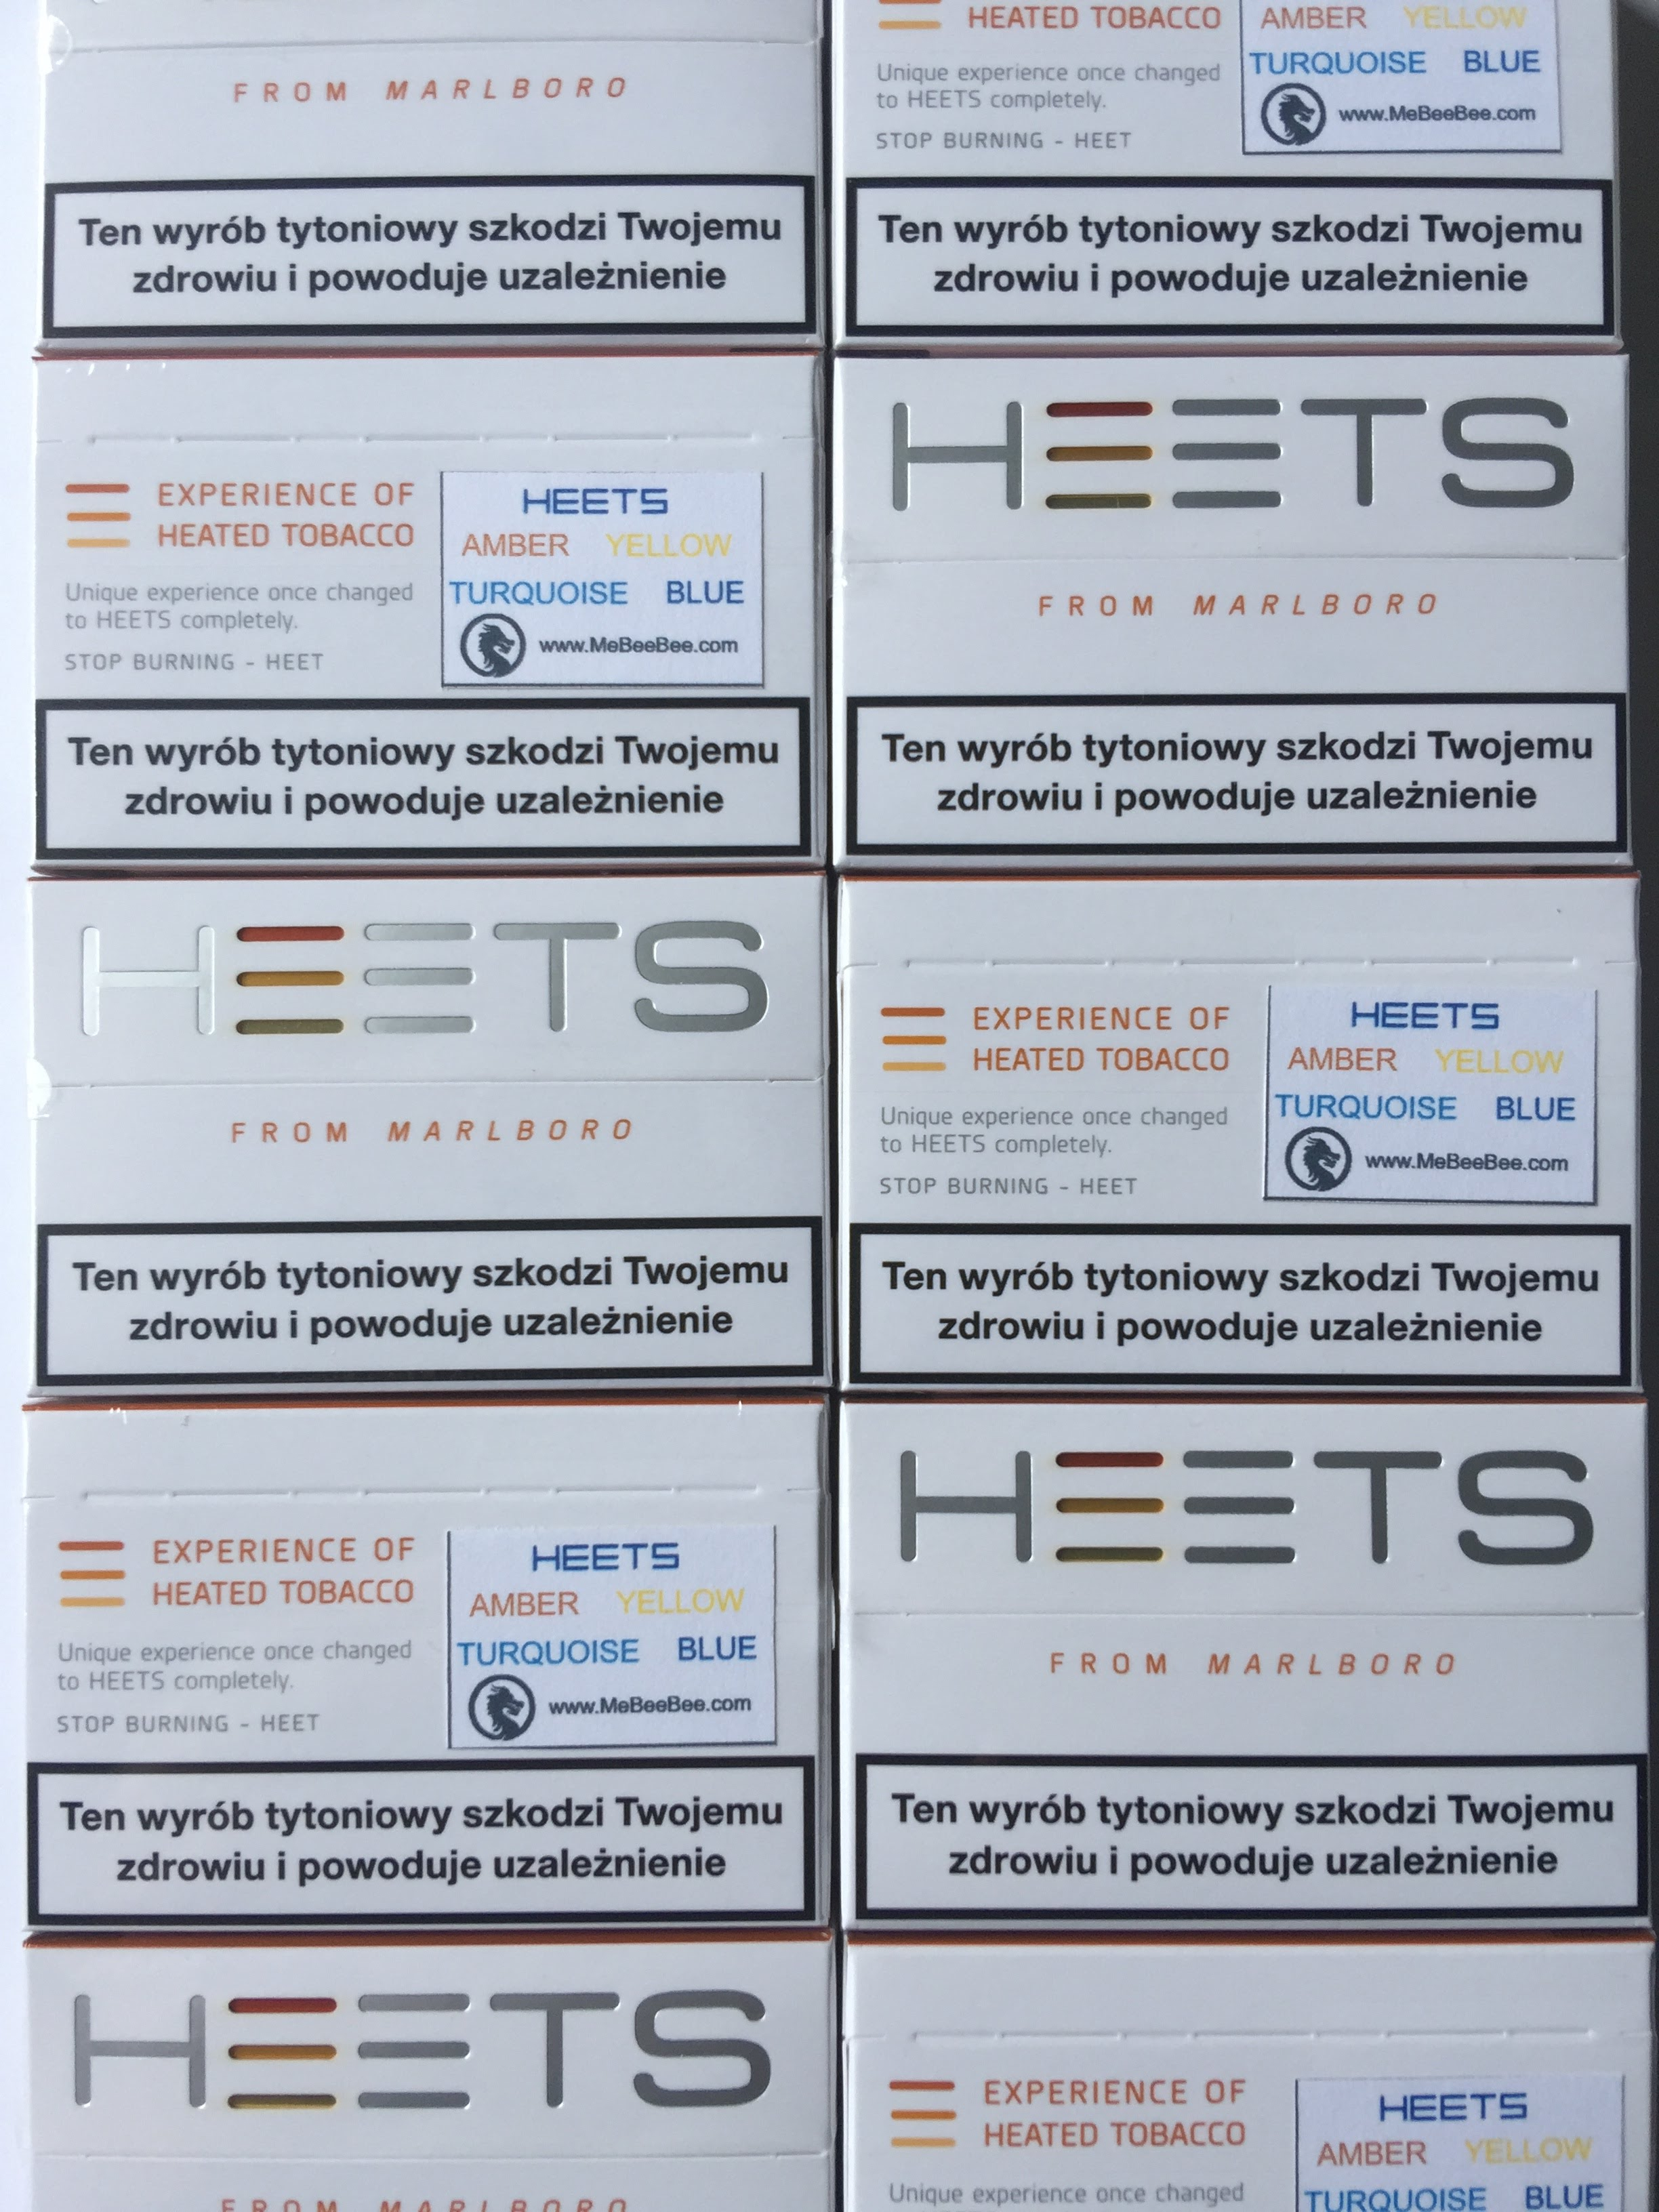 IQOS Amber Label Heet Stick 1 Box Genuine product from EU